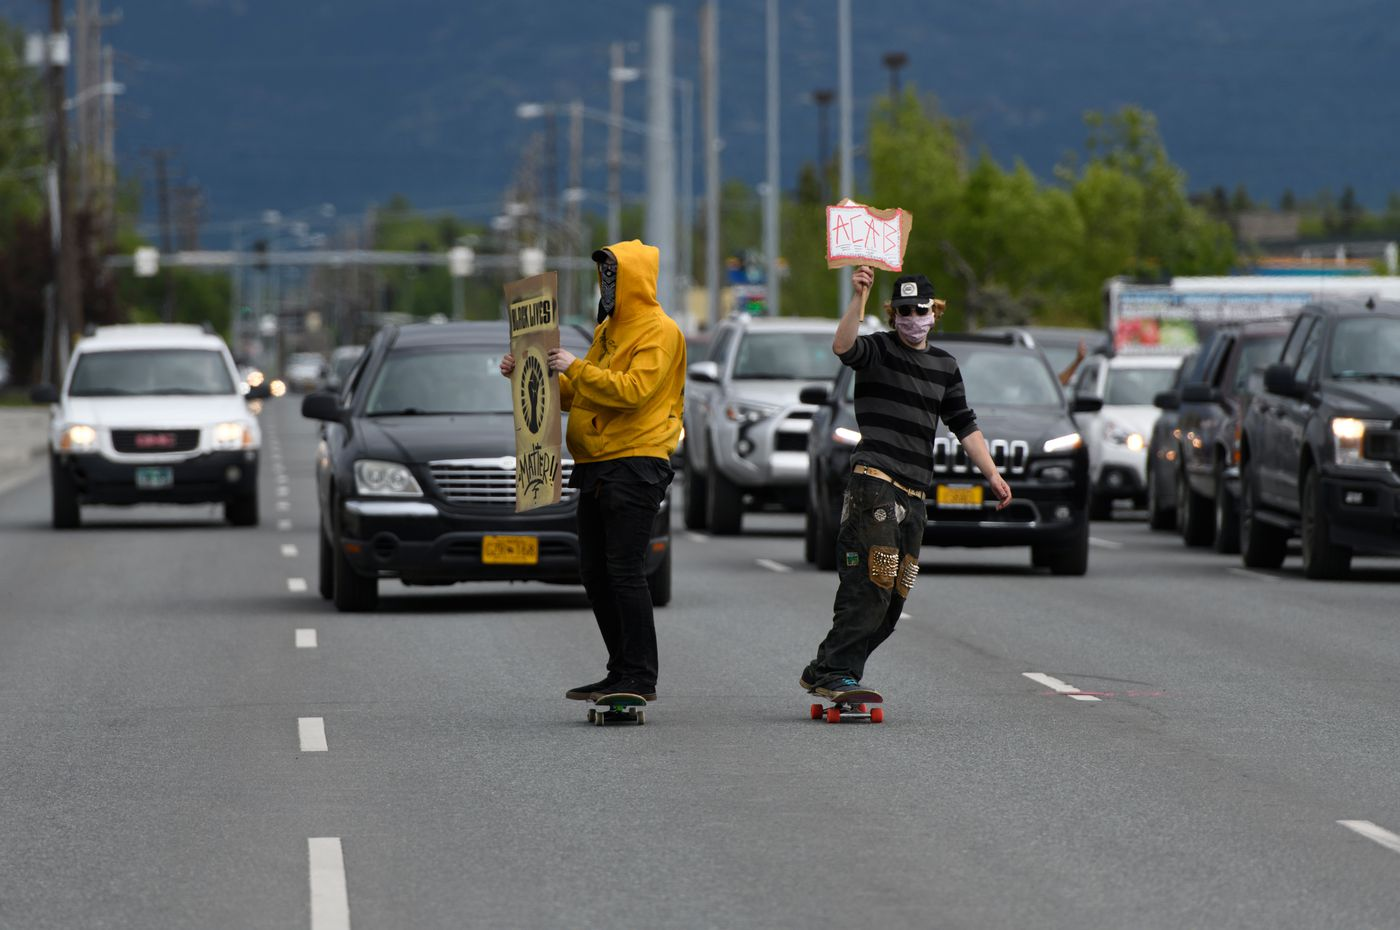 Skateboarders slow traffic on Northern Lights Boulevard Saturday. (Marc Lester / Anchorage Daily News)